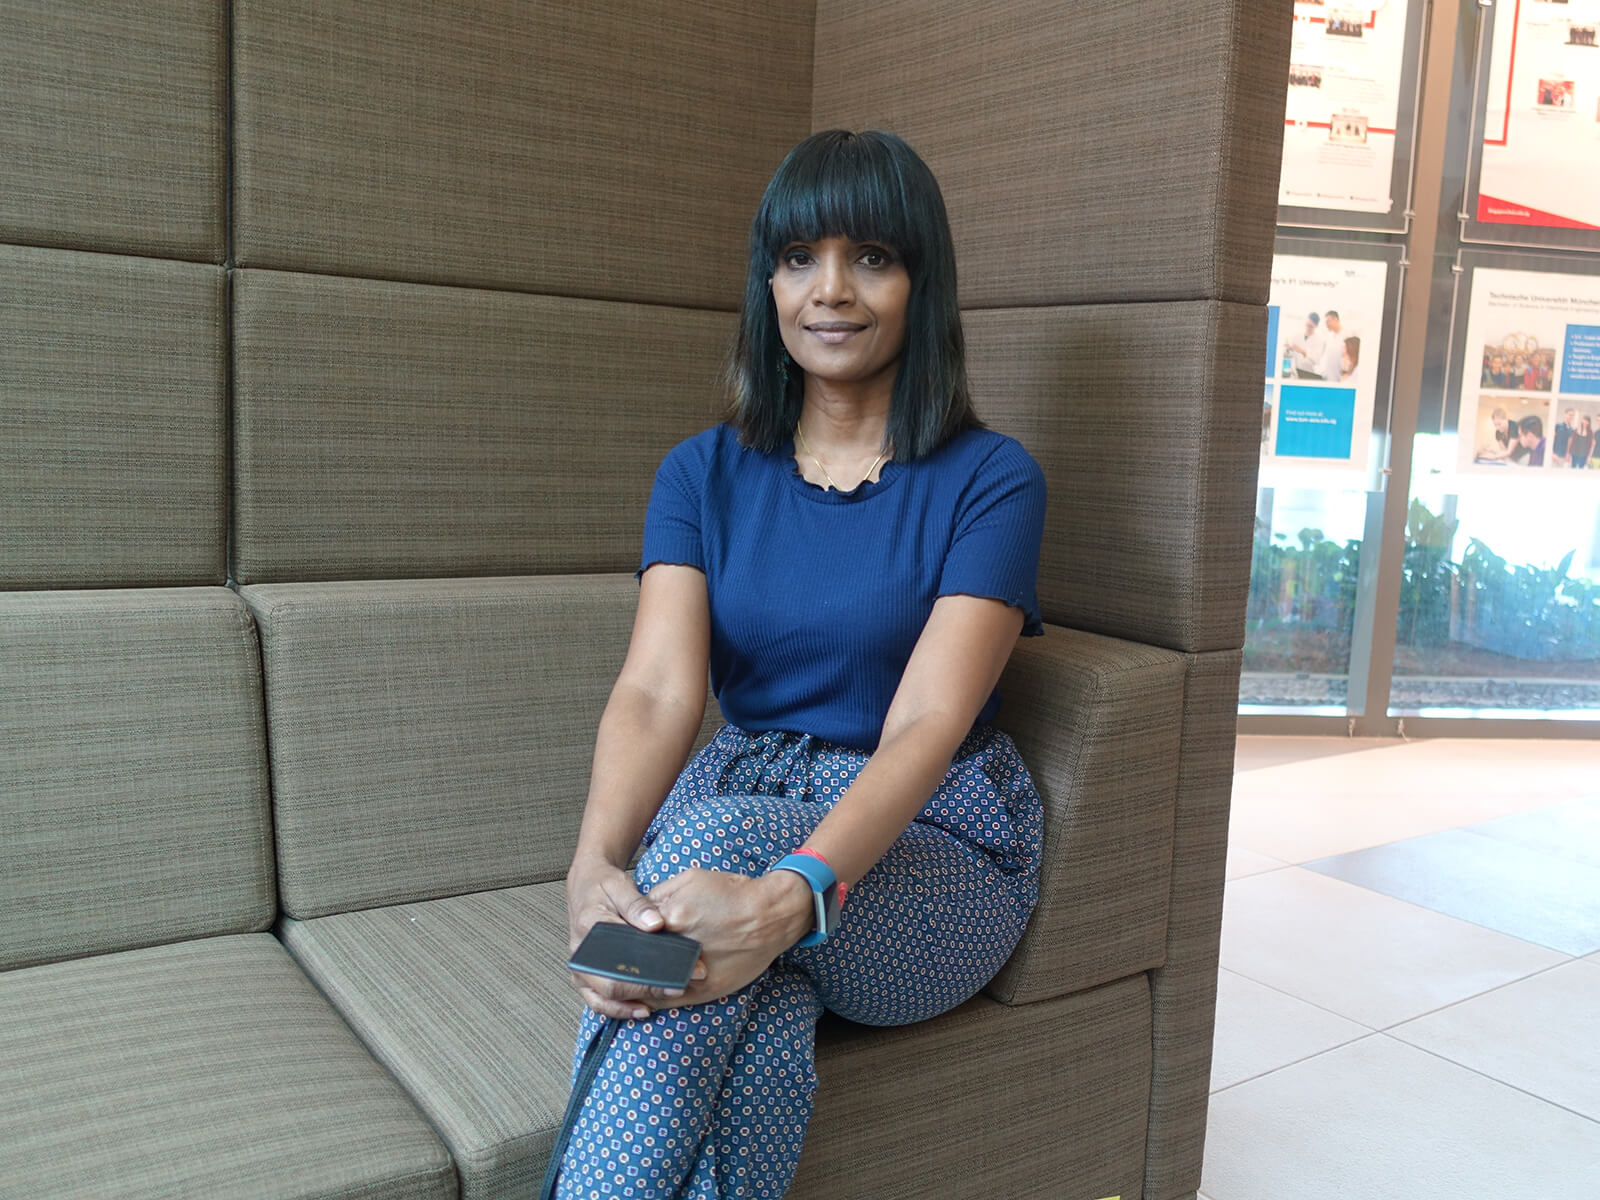 Shanthina Ravindran sits on a gray sofa at the DigiPen (Singapore) campus.